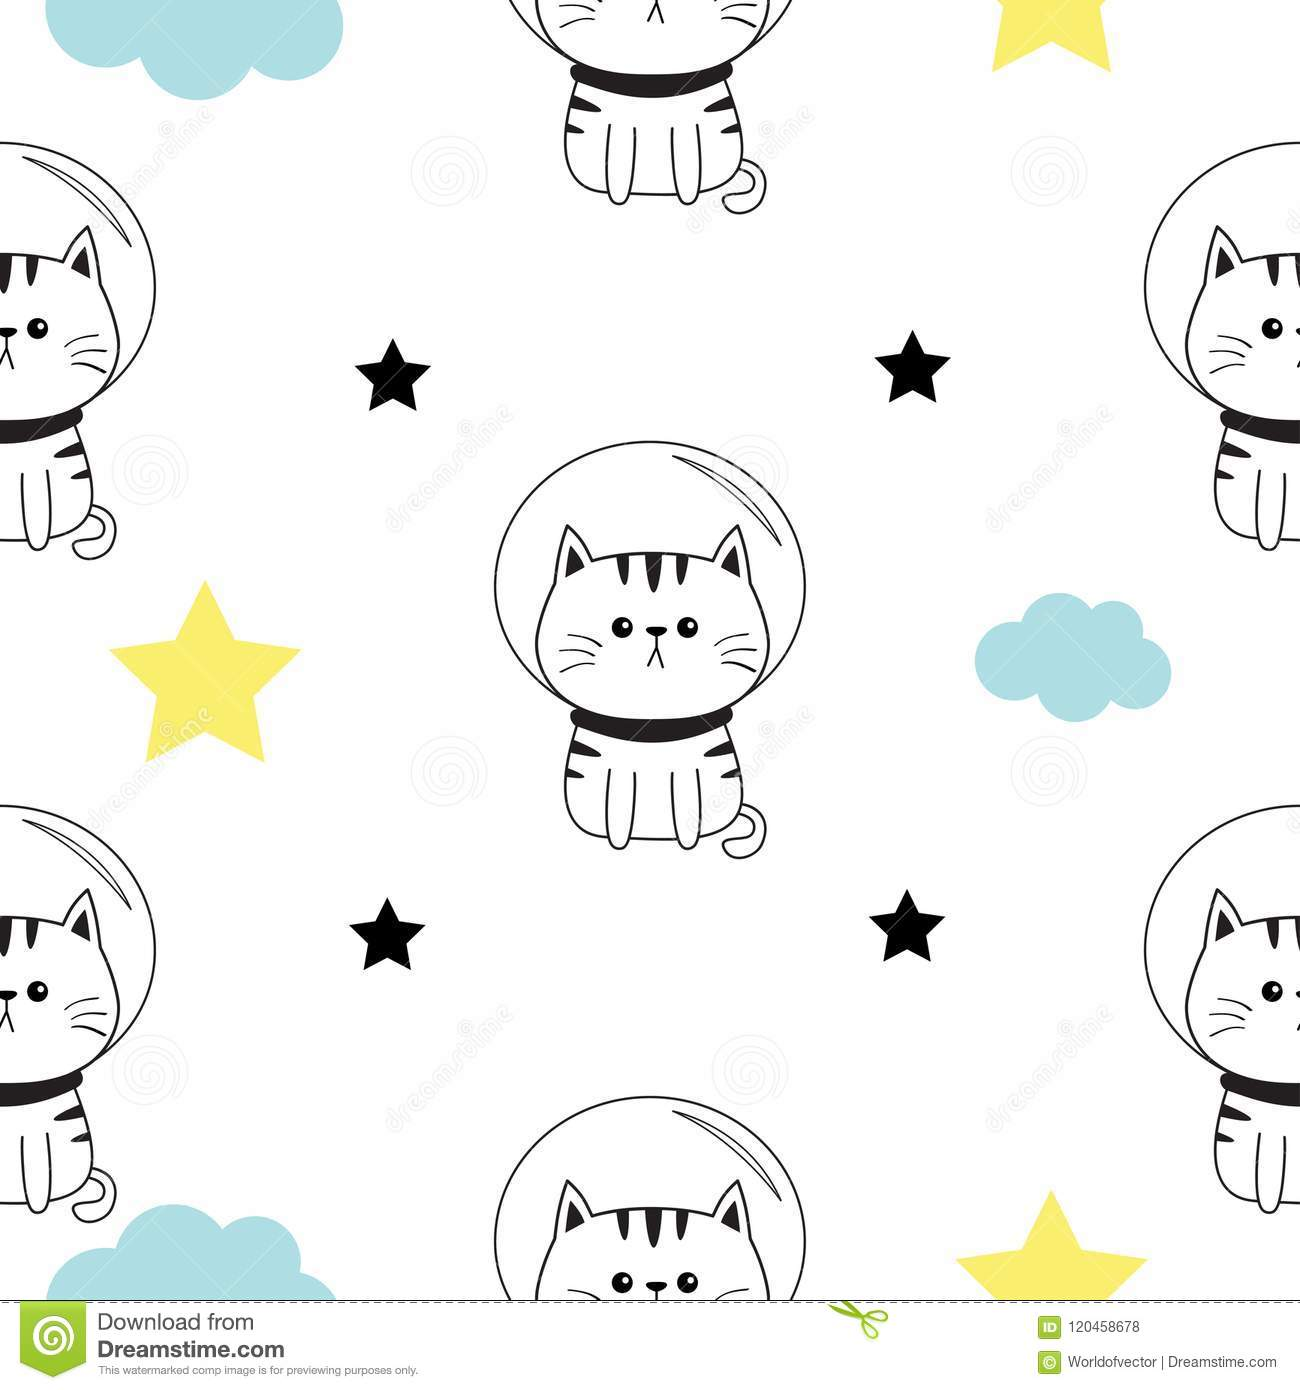 Cat Spaceman Head Hands Cloud Star Shape Cute Cartoon Kawaii